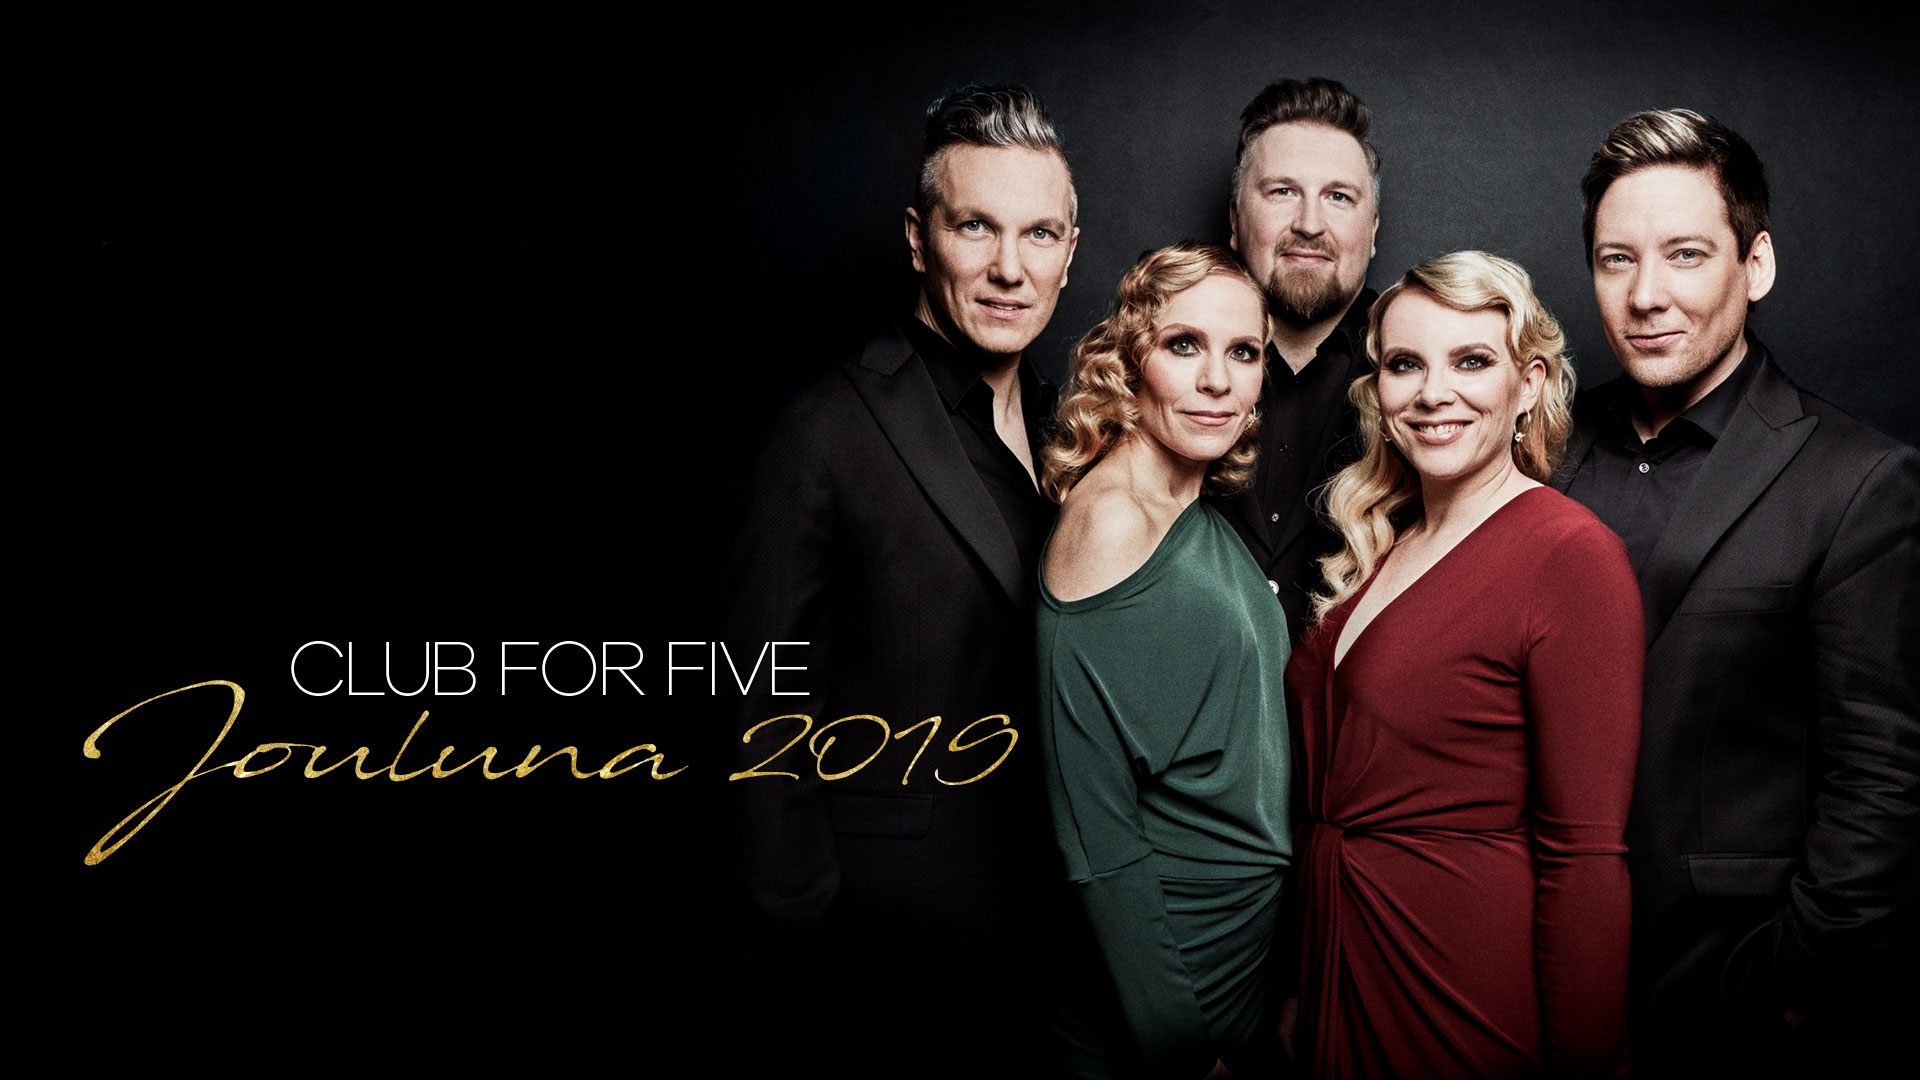 Club For Five - Jouluna 2019 su 1.12.2019 klo 15.00